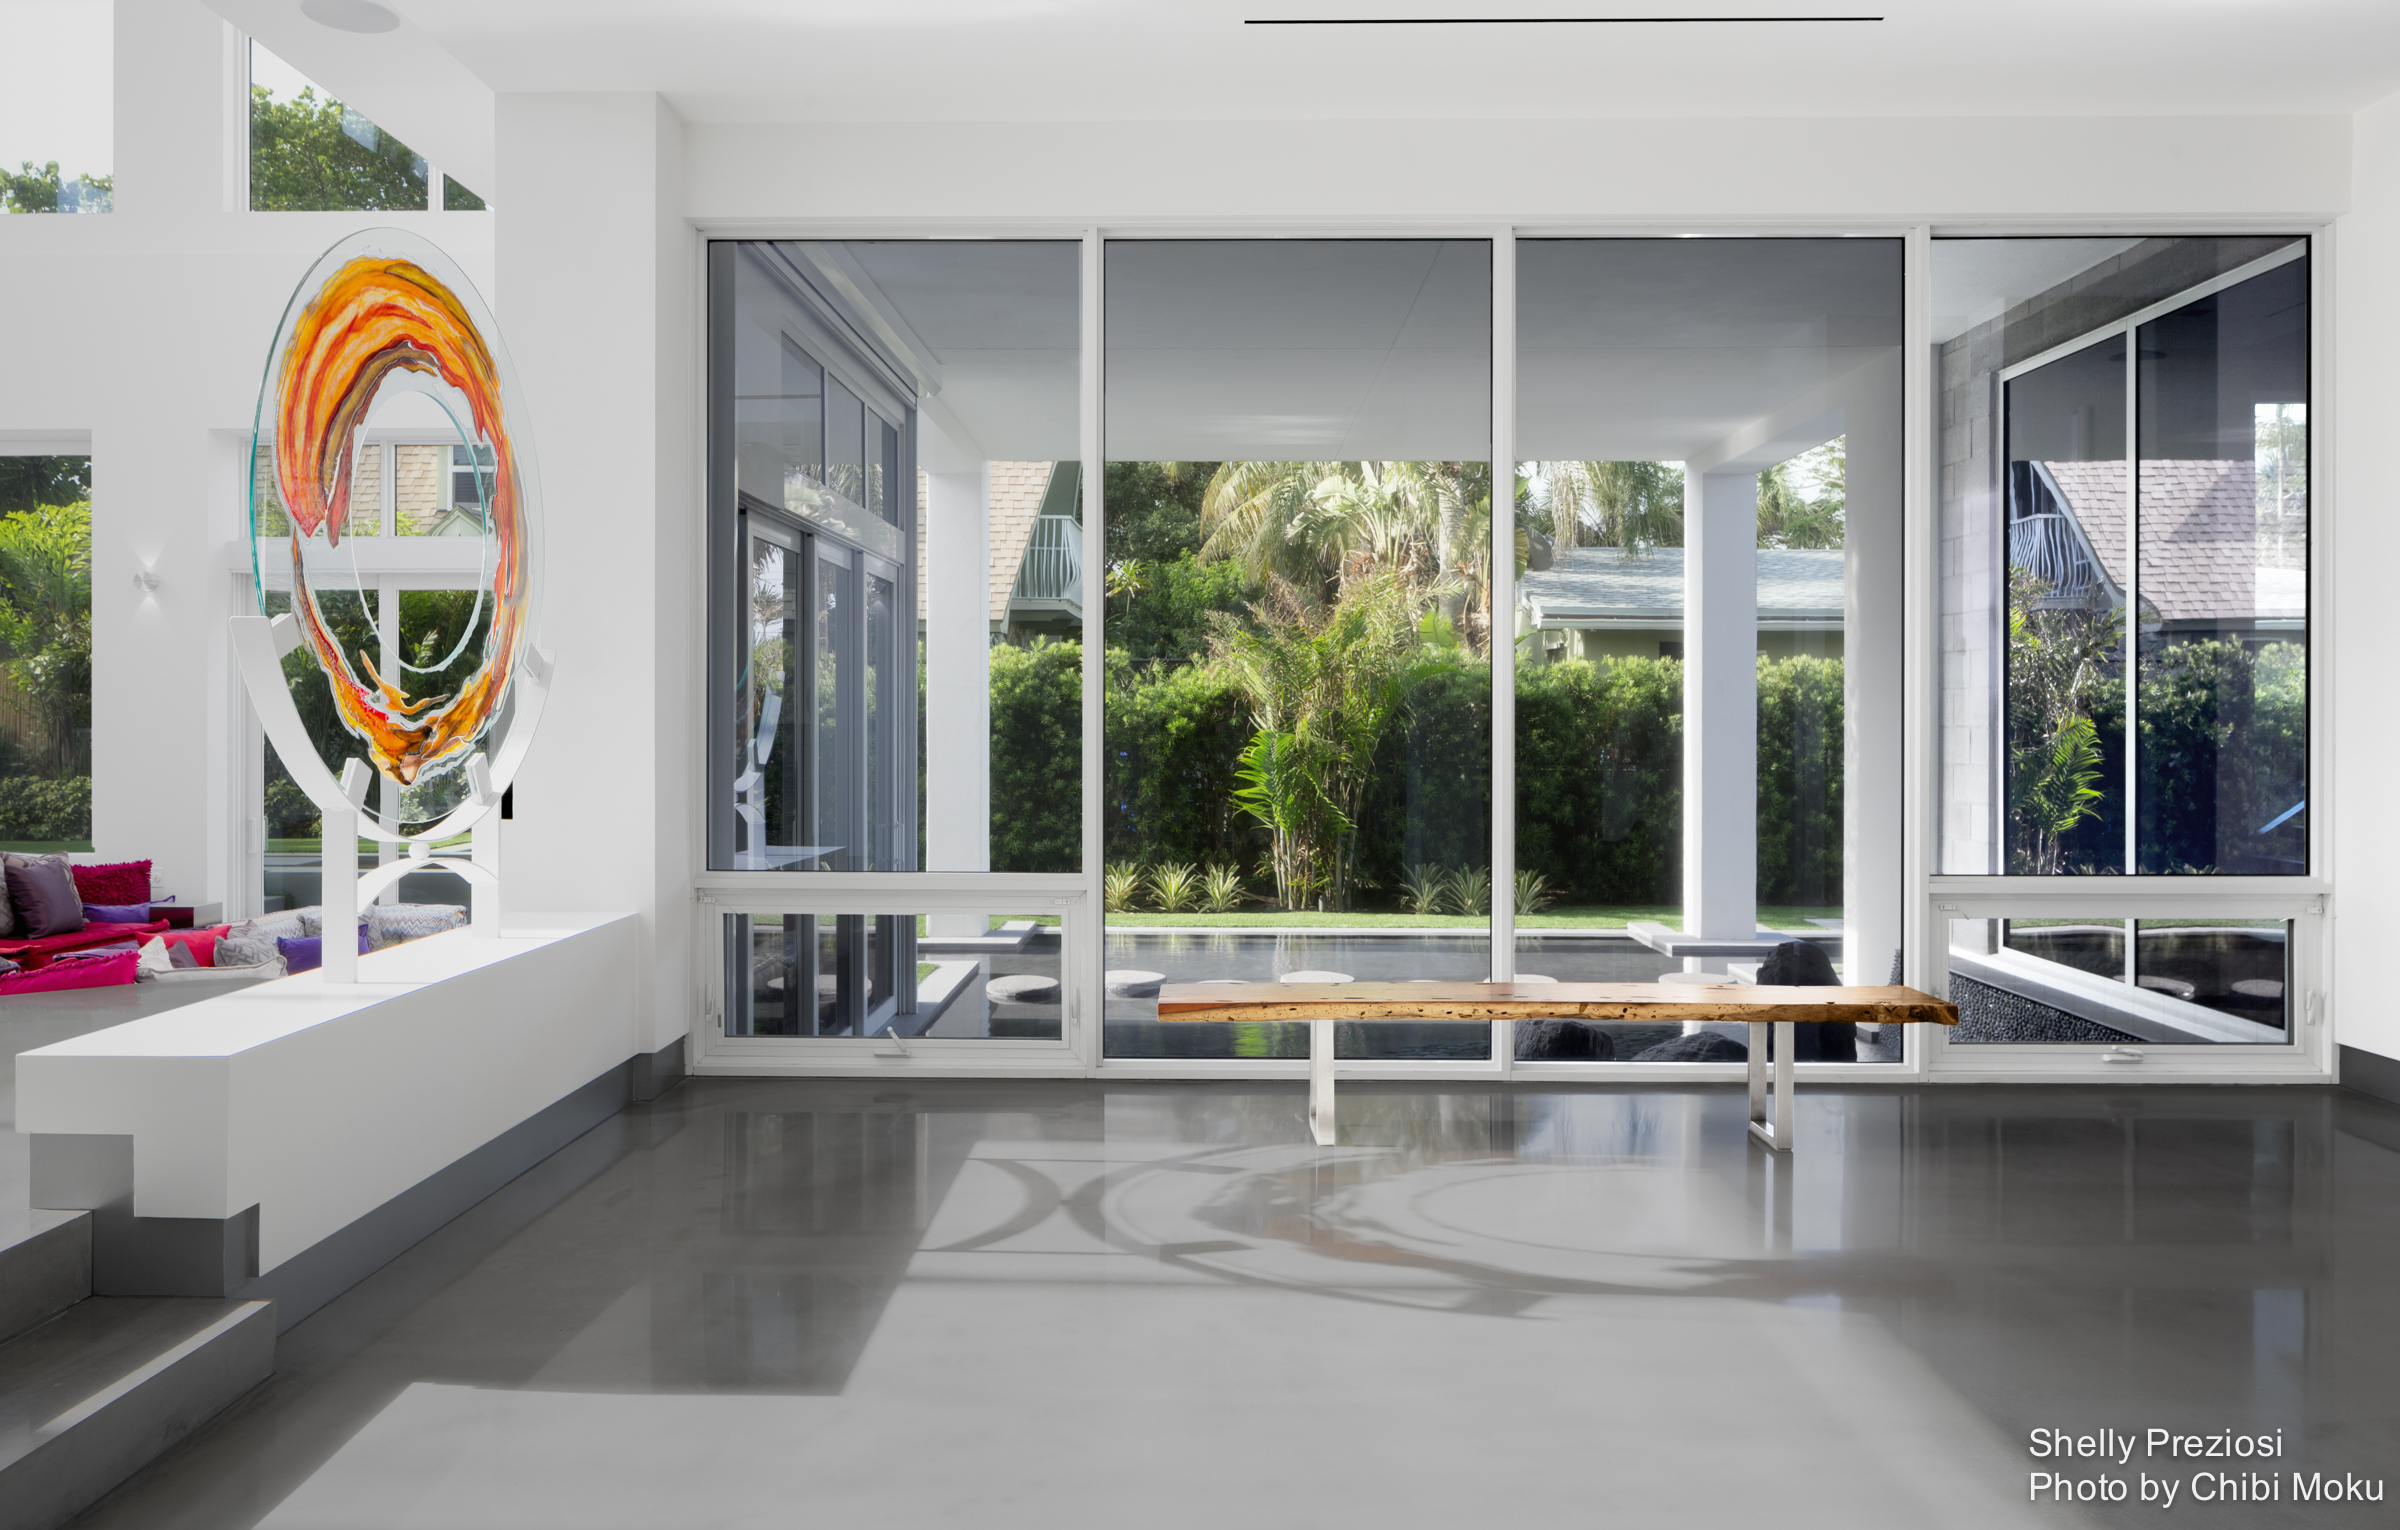 Shelly Preziosi Completes Beautiful New Interior Creation 'Modern Muse'